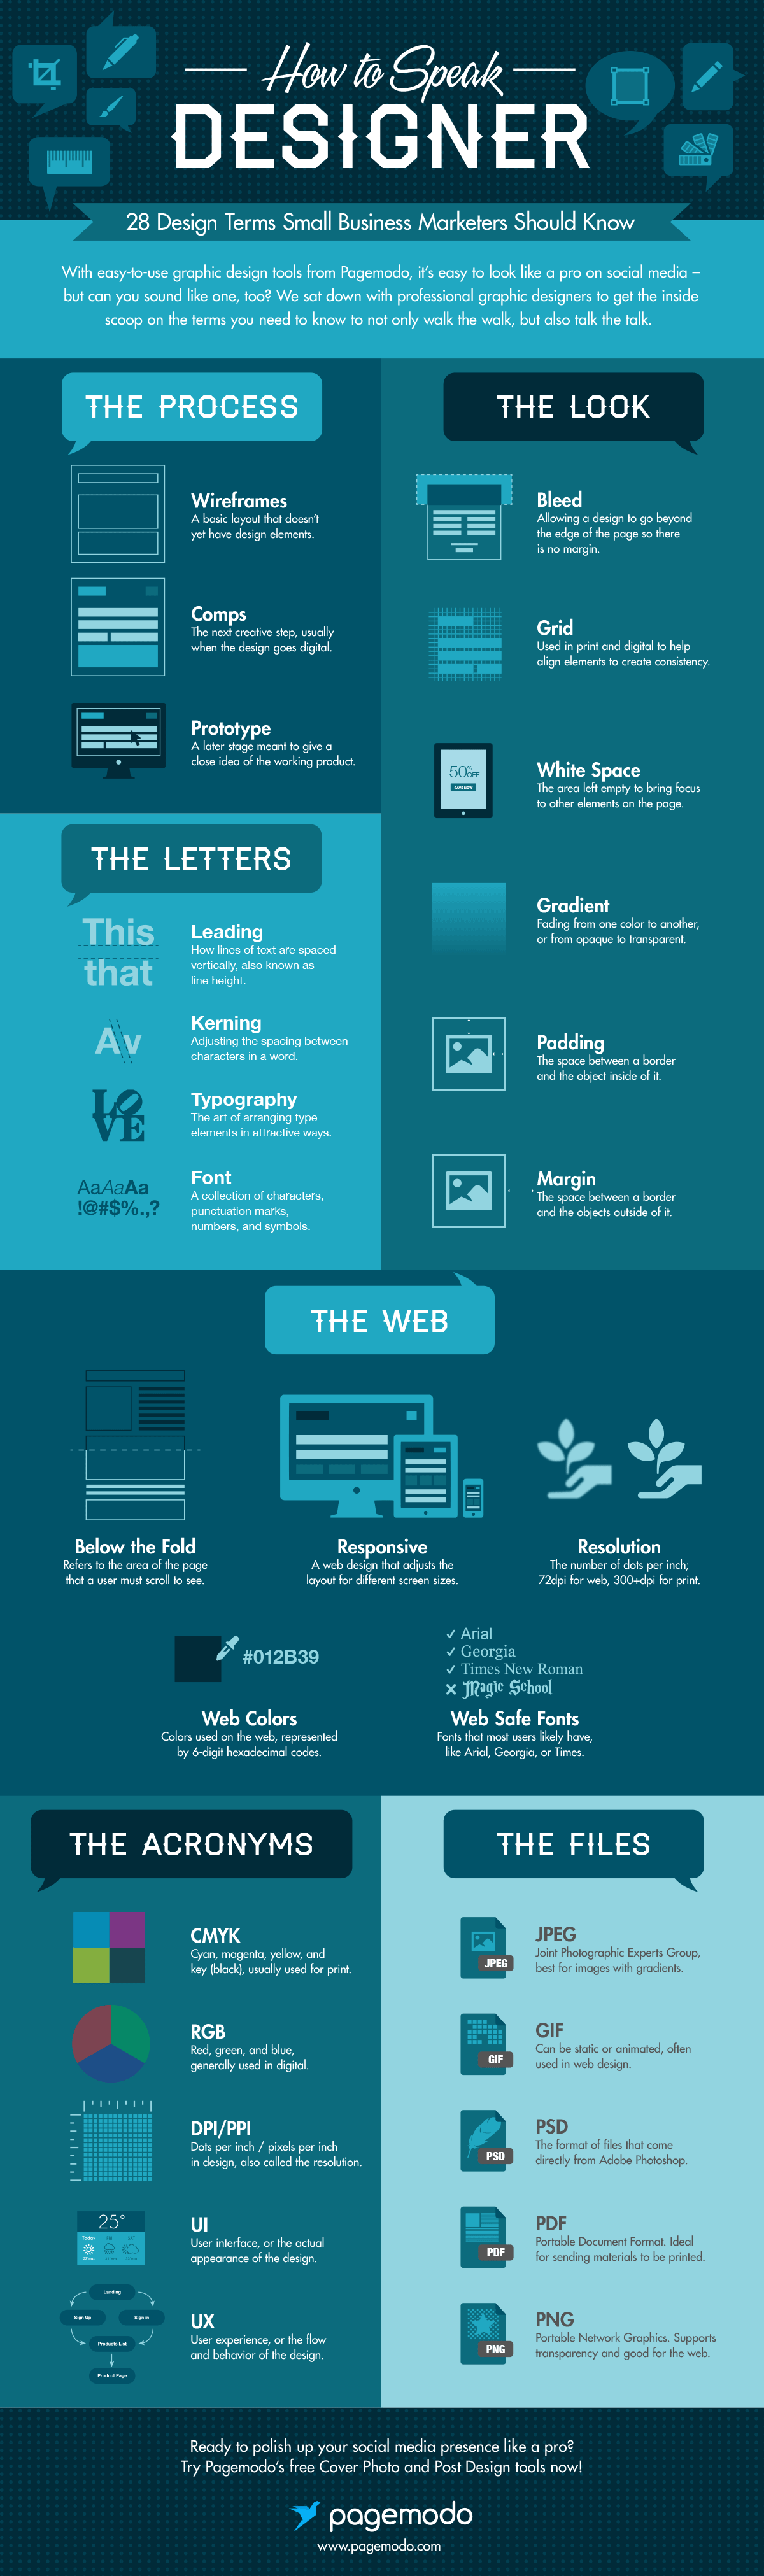 20150226-Pagemodo-How-to-Speak-Designer-Infographic